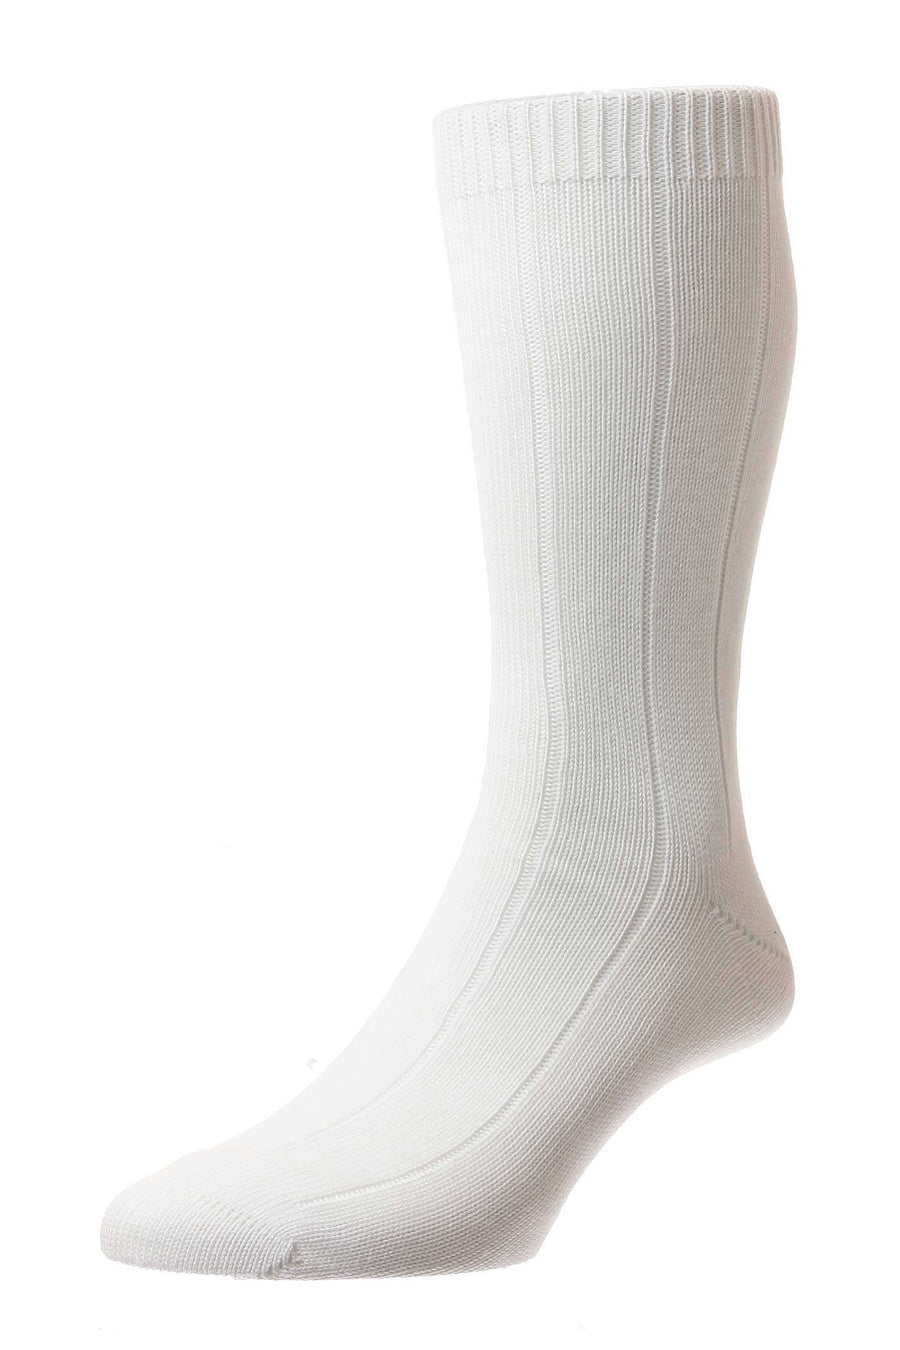 White Sport Cotton Mid-Calf